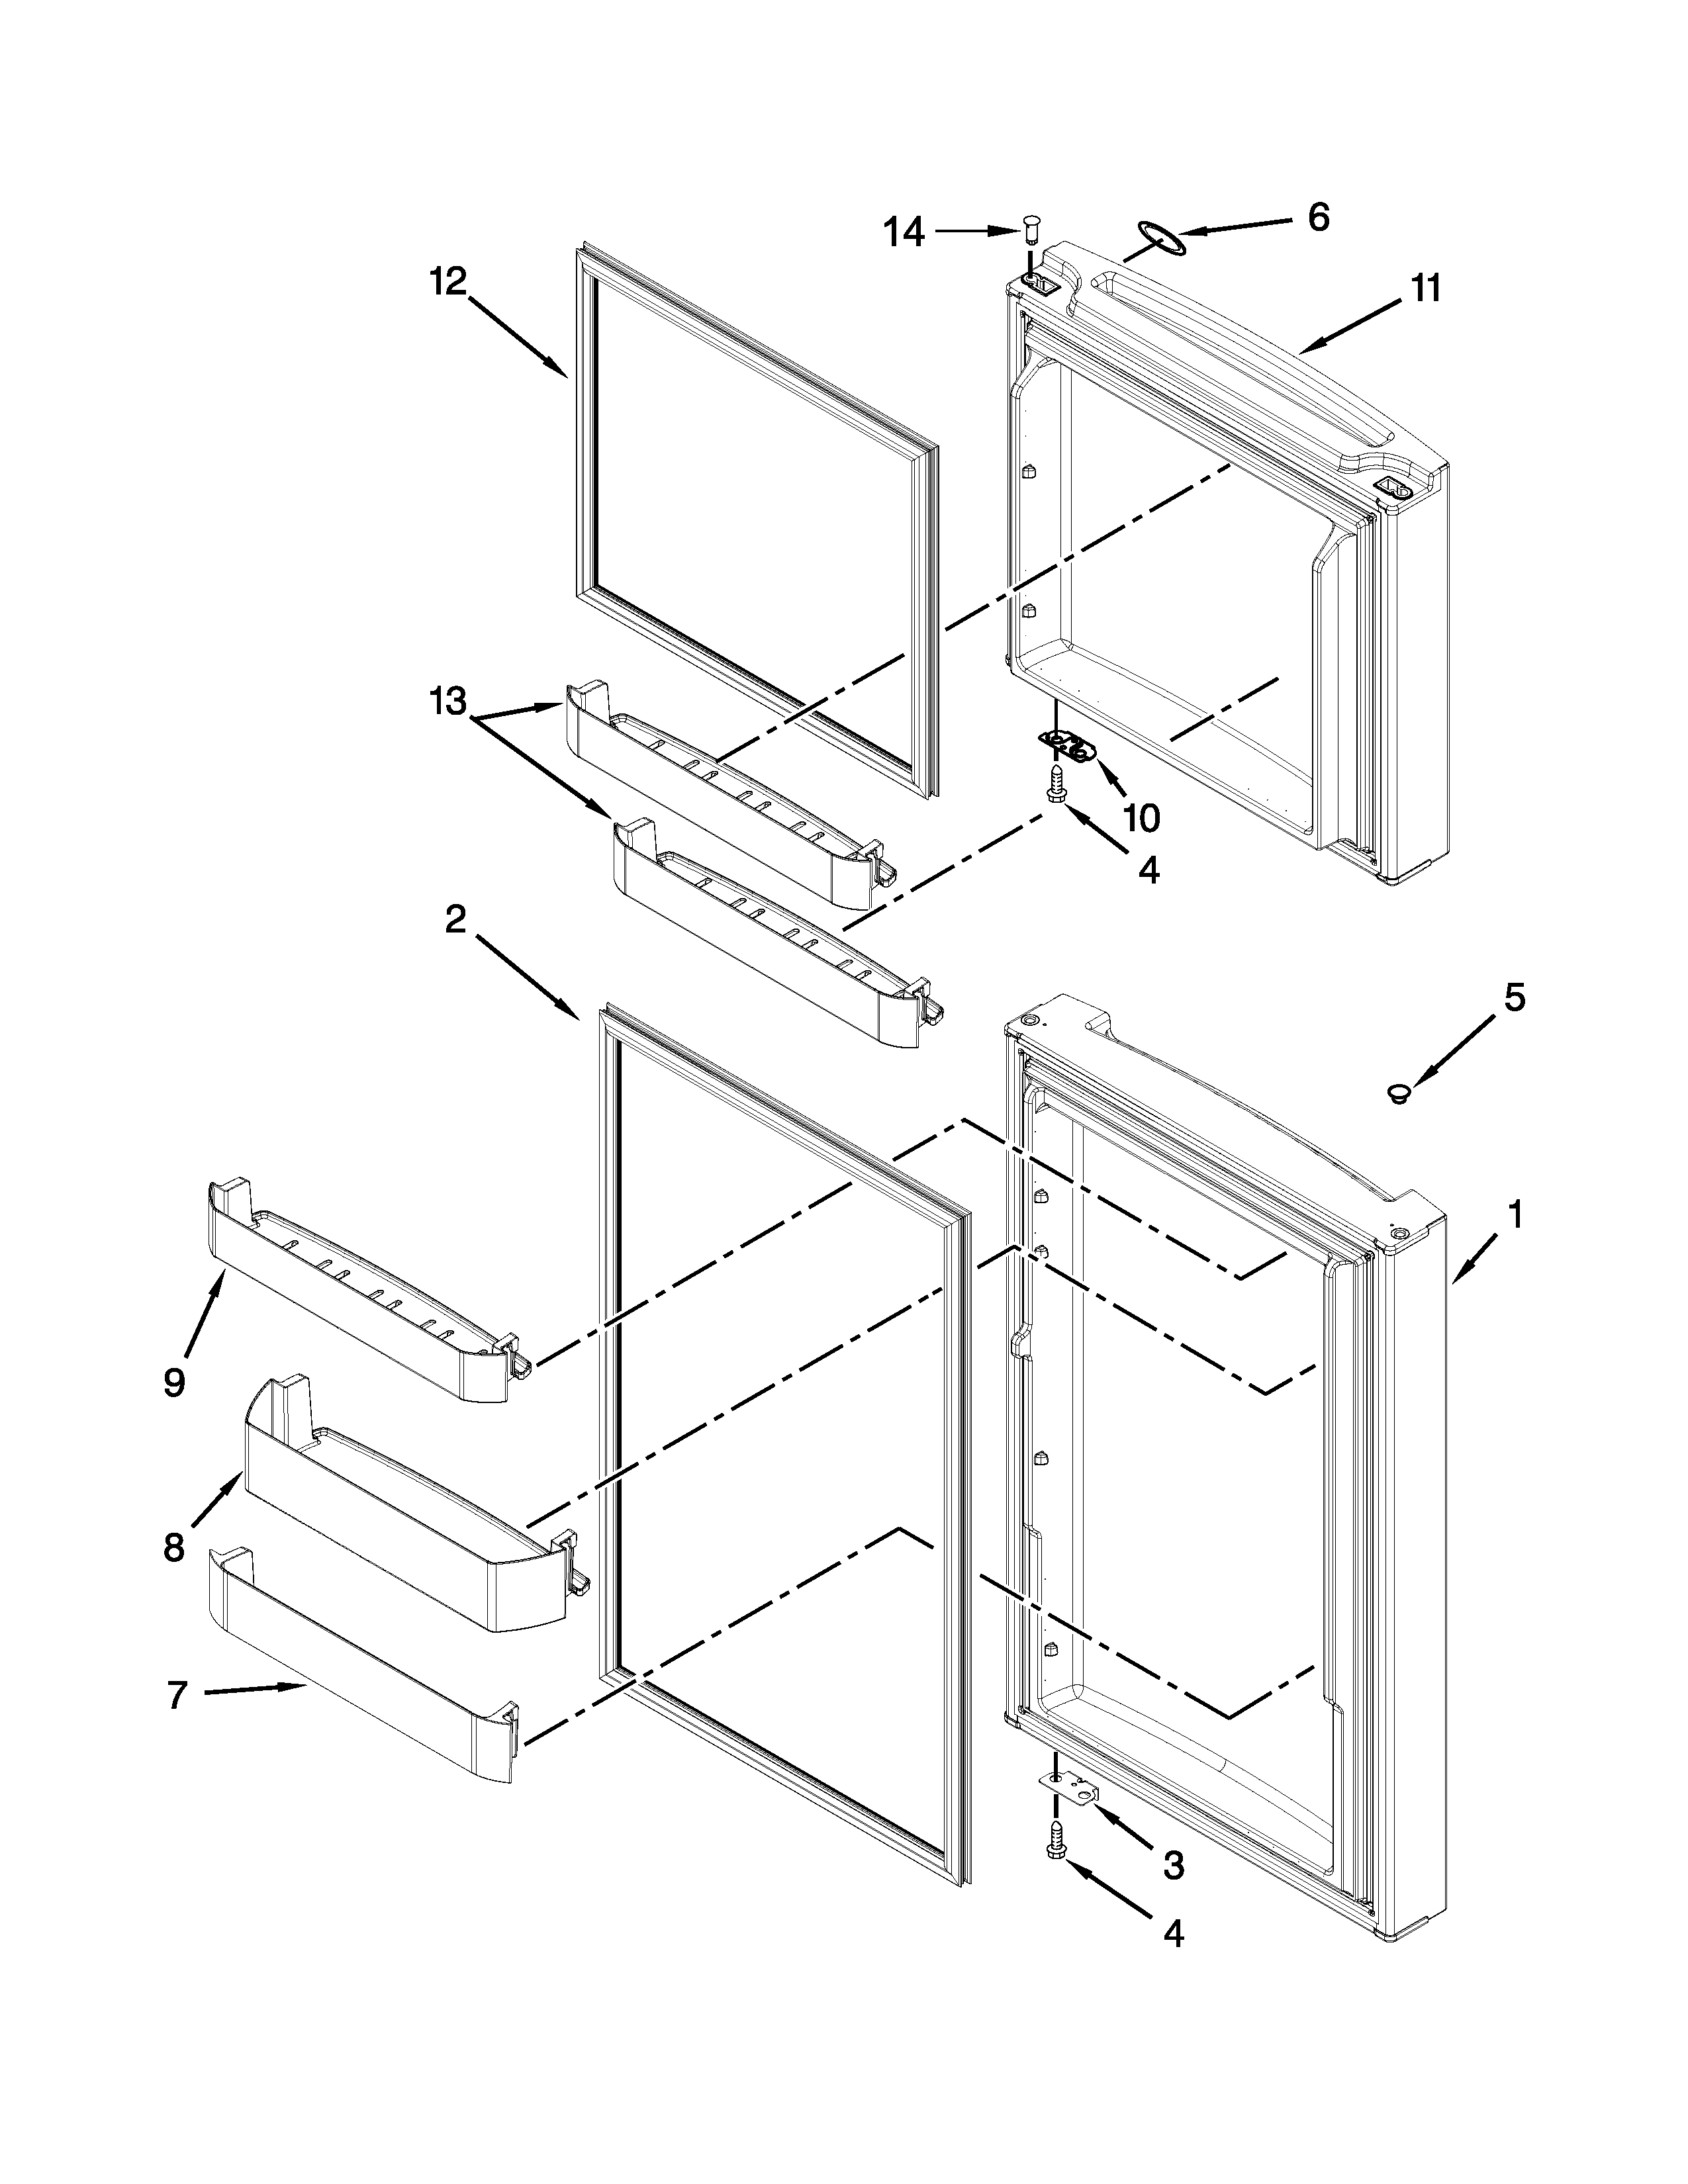 Computer Parts Drawing At Free For Personal Use Diagram With Its Best Laptops Under 500 2550x3300 Whirlpool Refrigerator Model Wrt111sfdm02 Sears Partsdirect